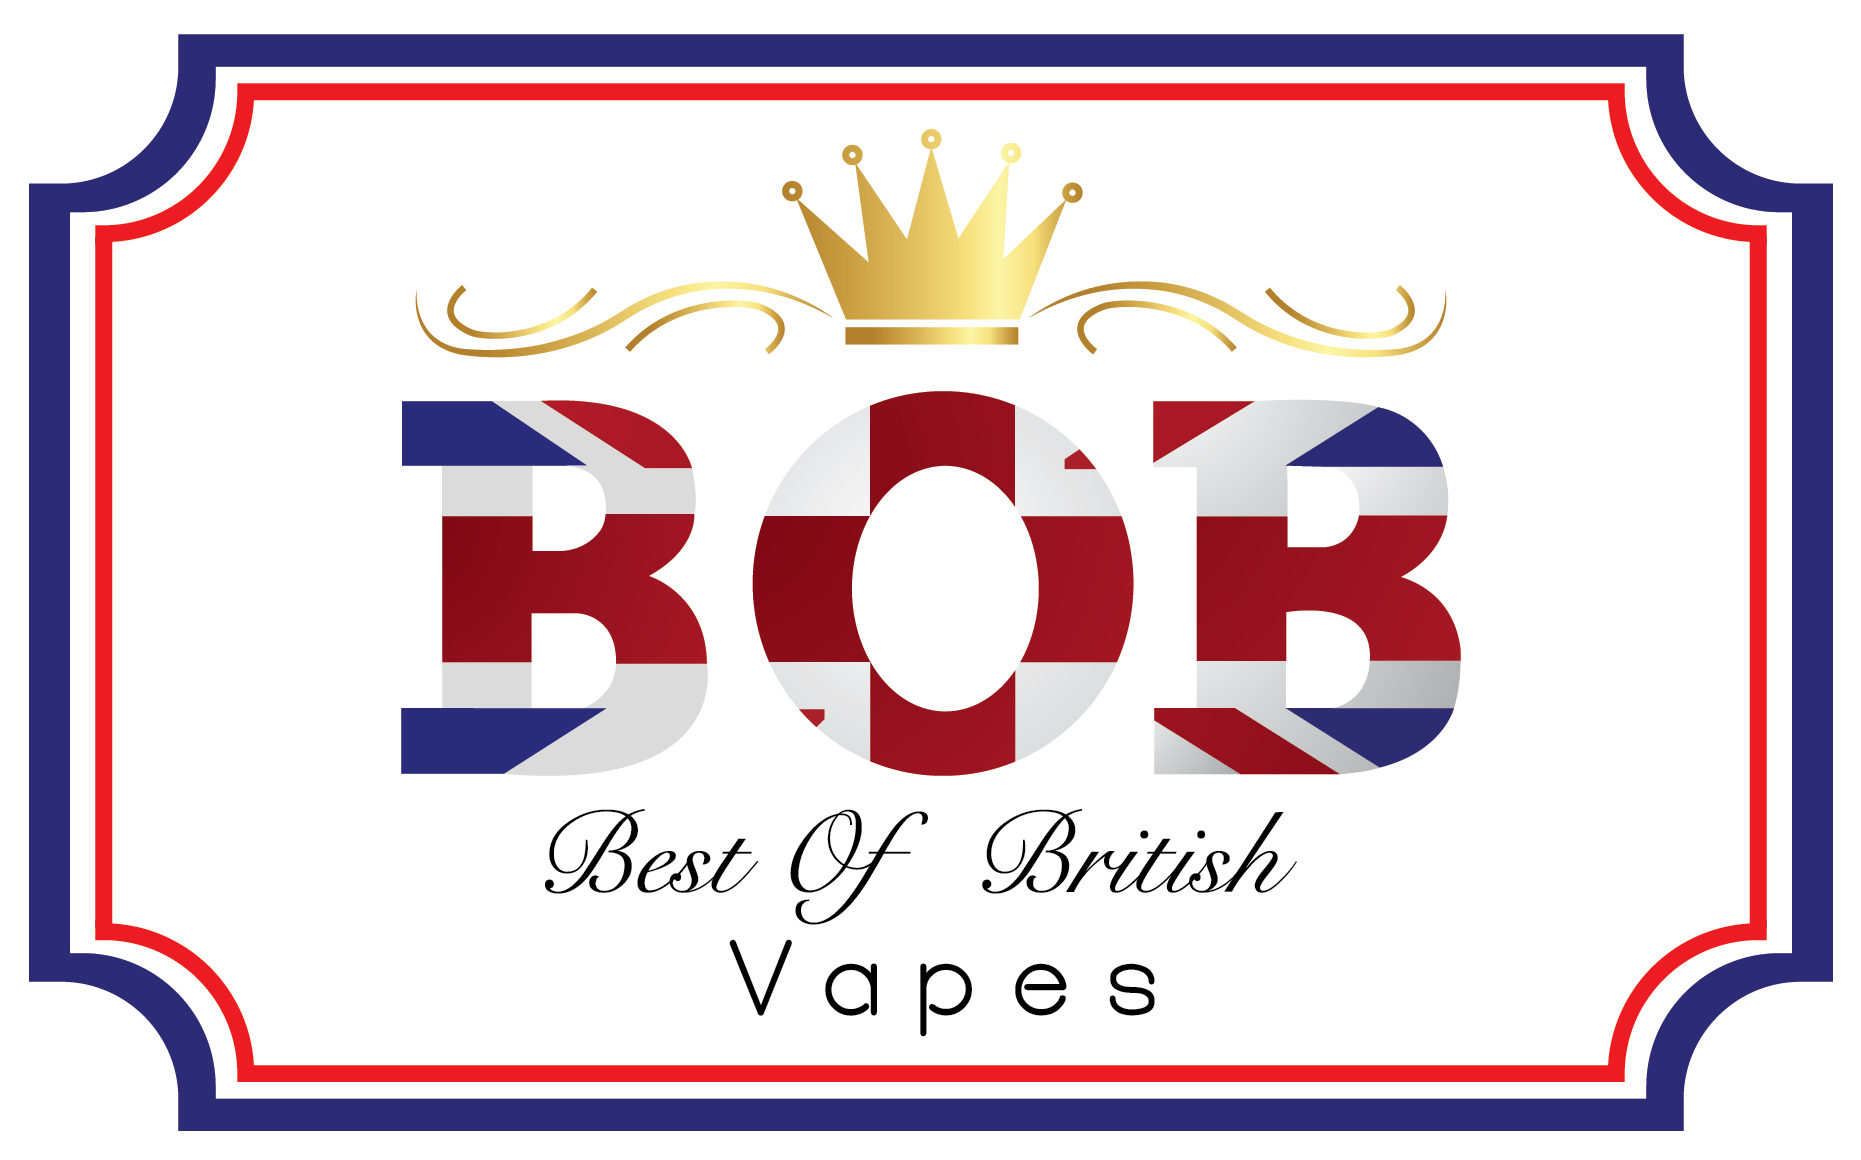 Best of British Vapes